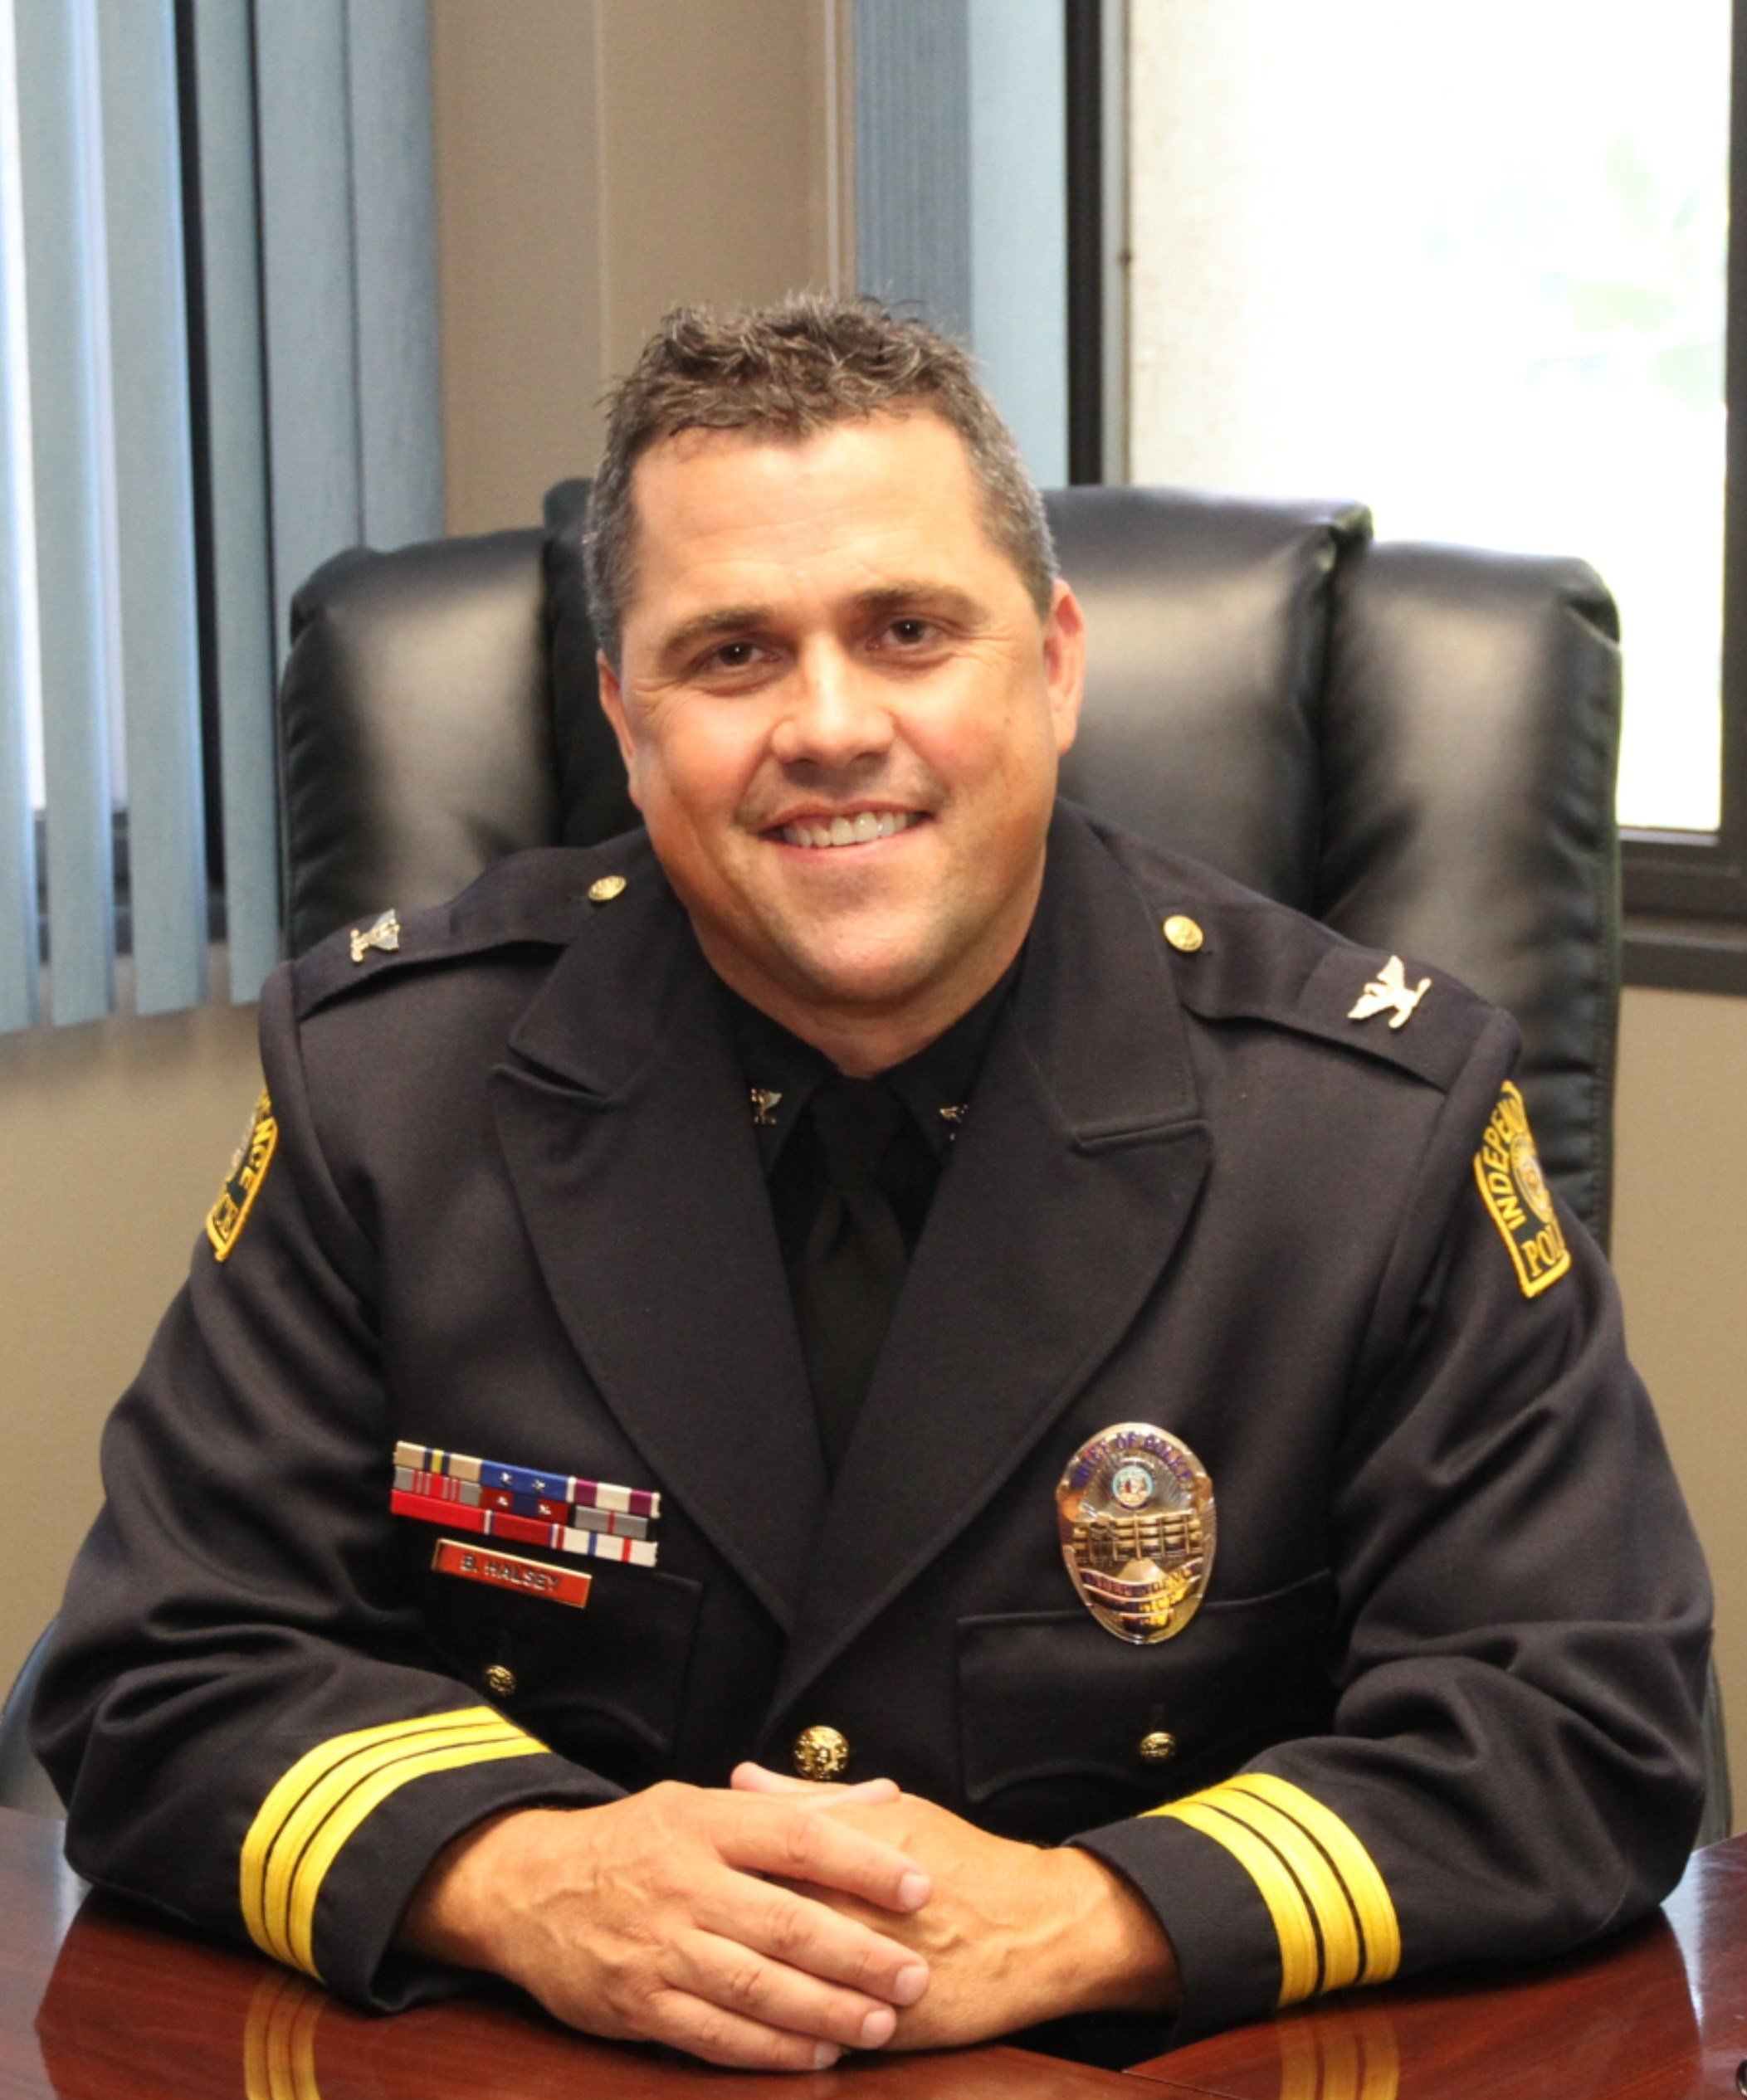 Most of the incidents alleged involved Brad Halsey, a veteran with the department who became police chief in 2016. (City of Independence)